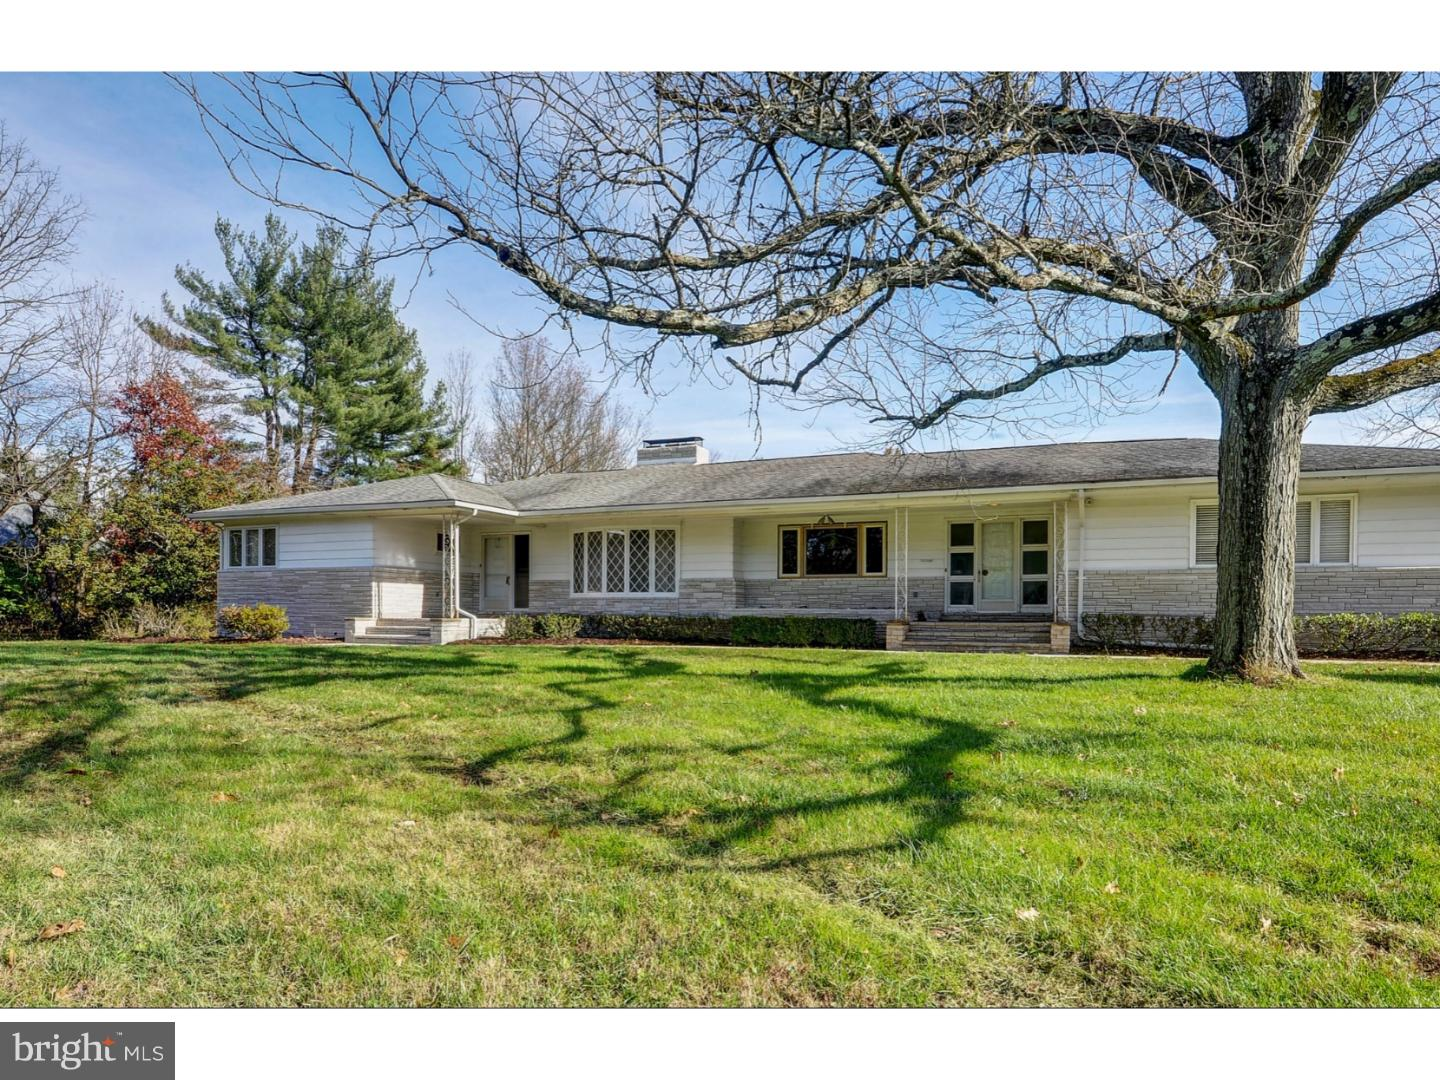 Property for Sale at 68 CARTER Road Princeton, New Jersey 08540 United States